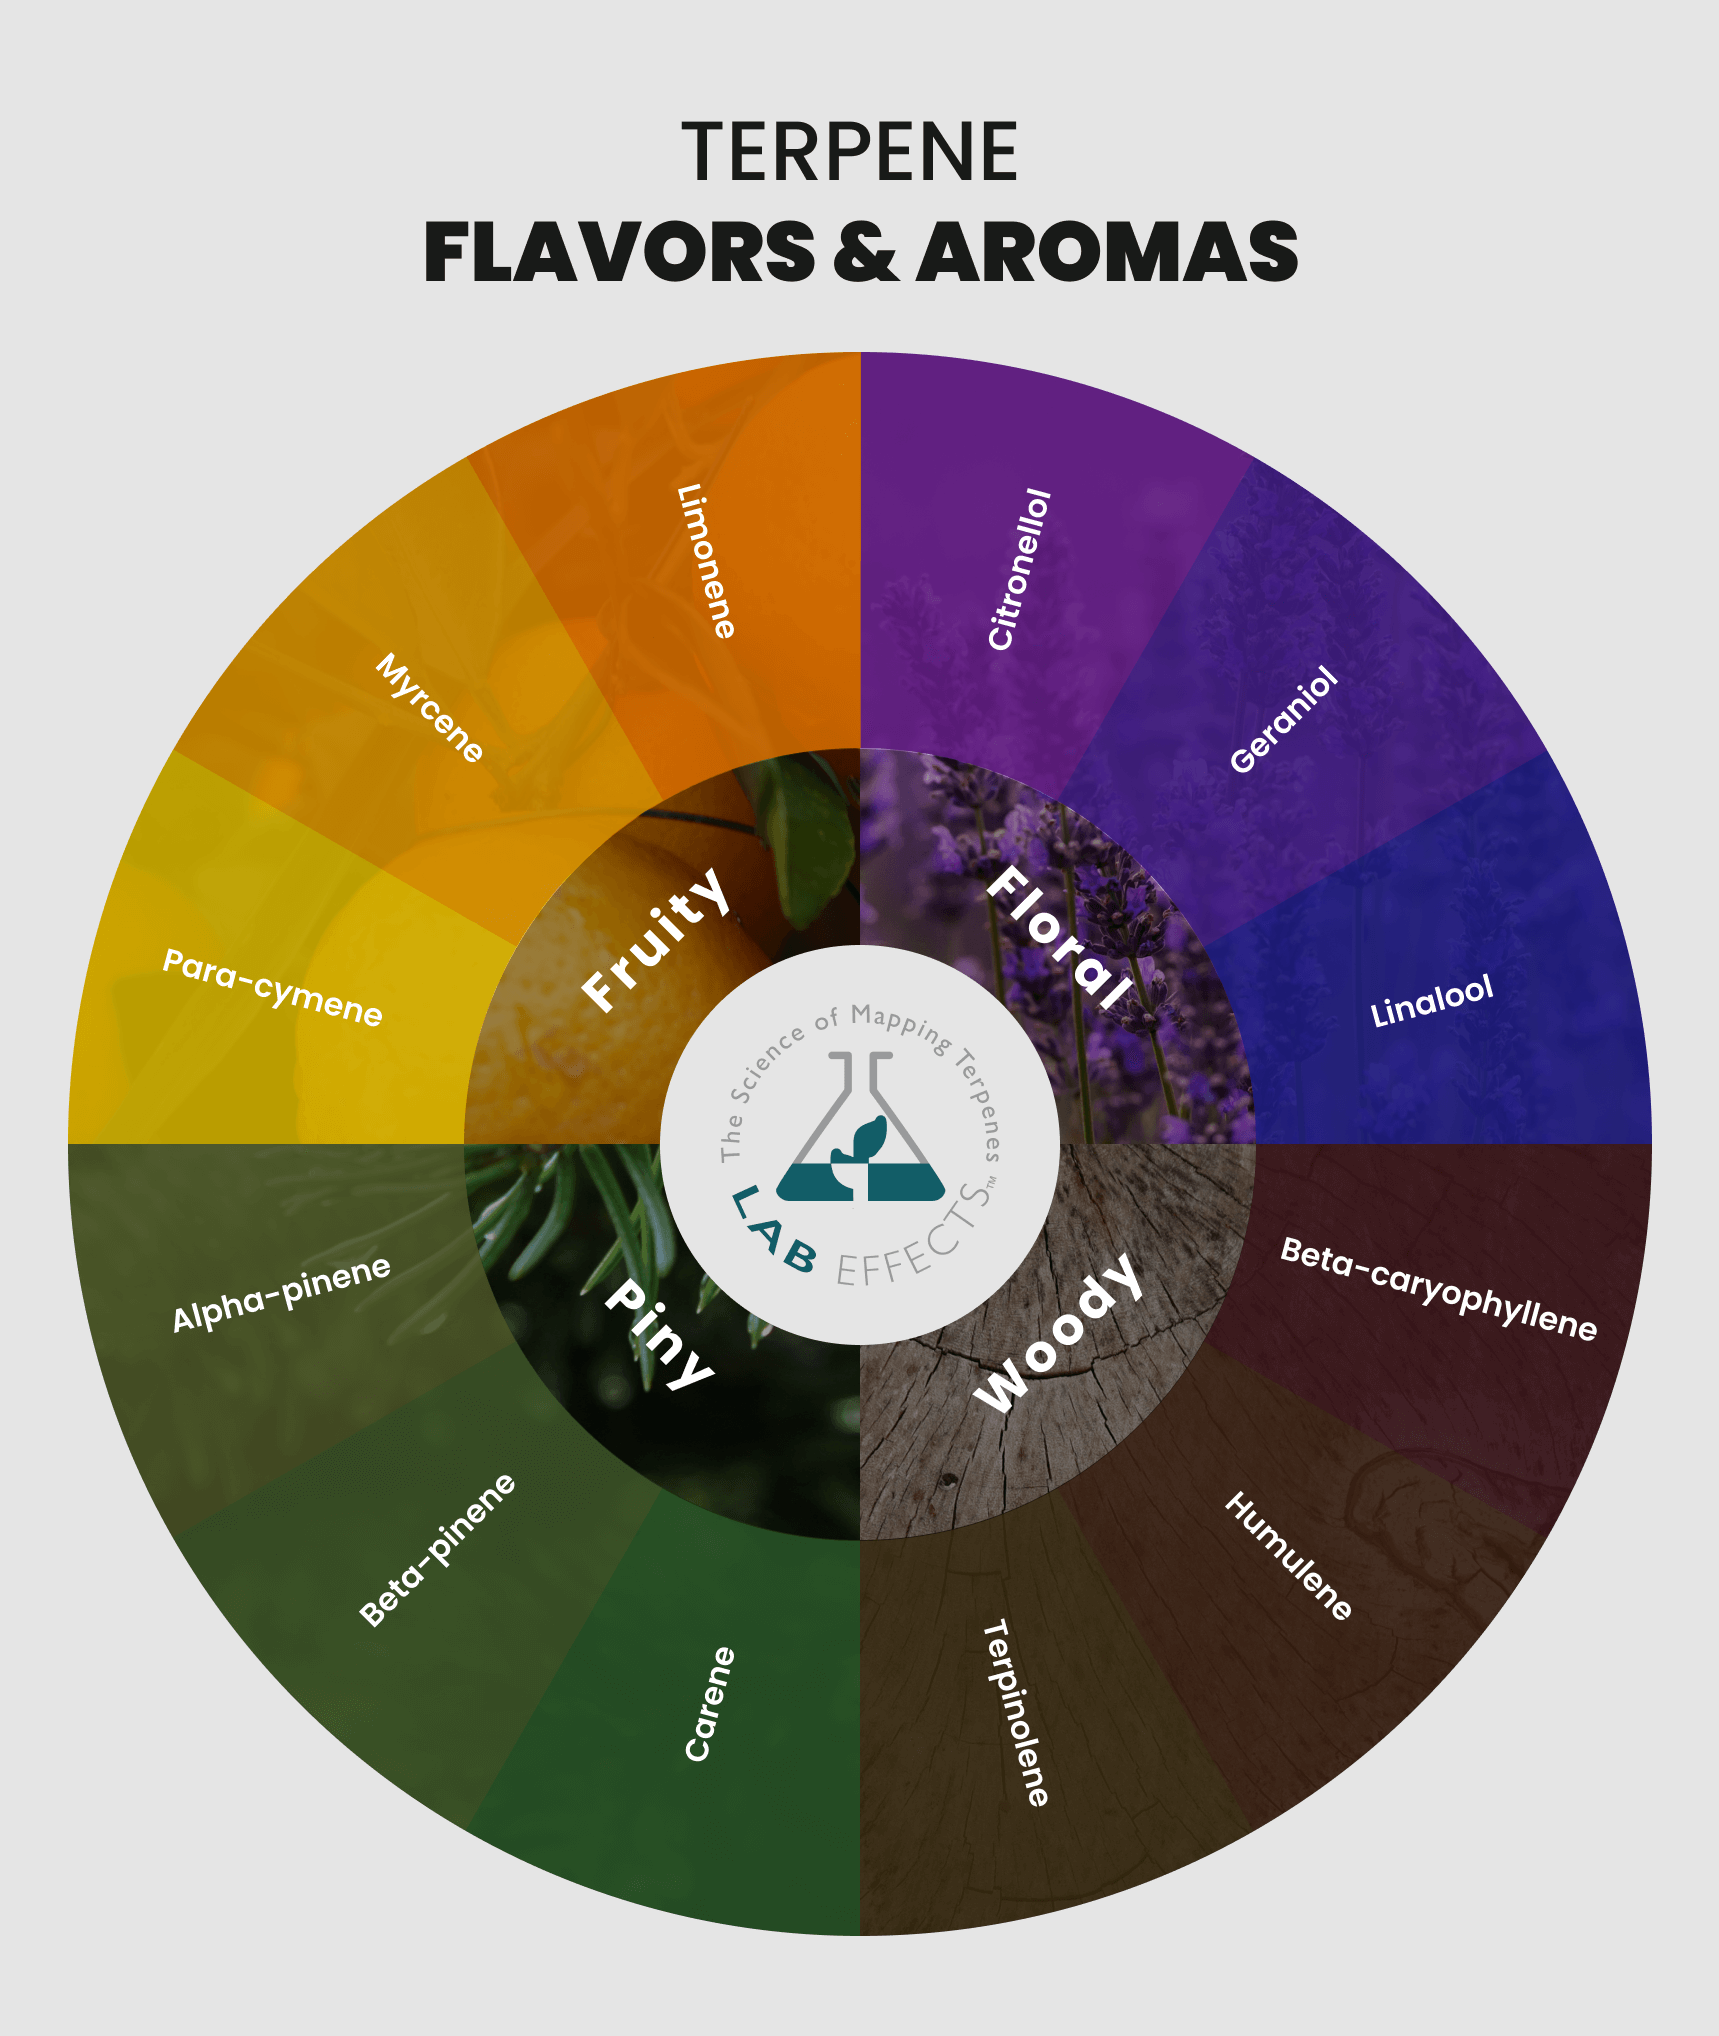 lab effects terpene flavors terpene aroma infographic